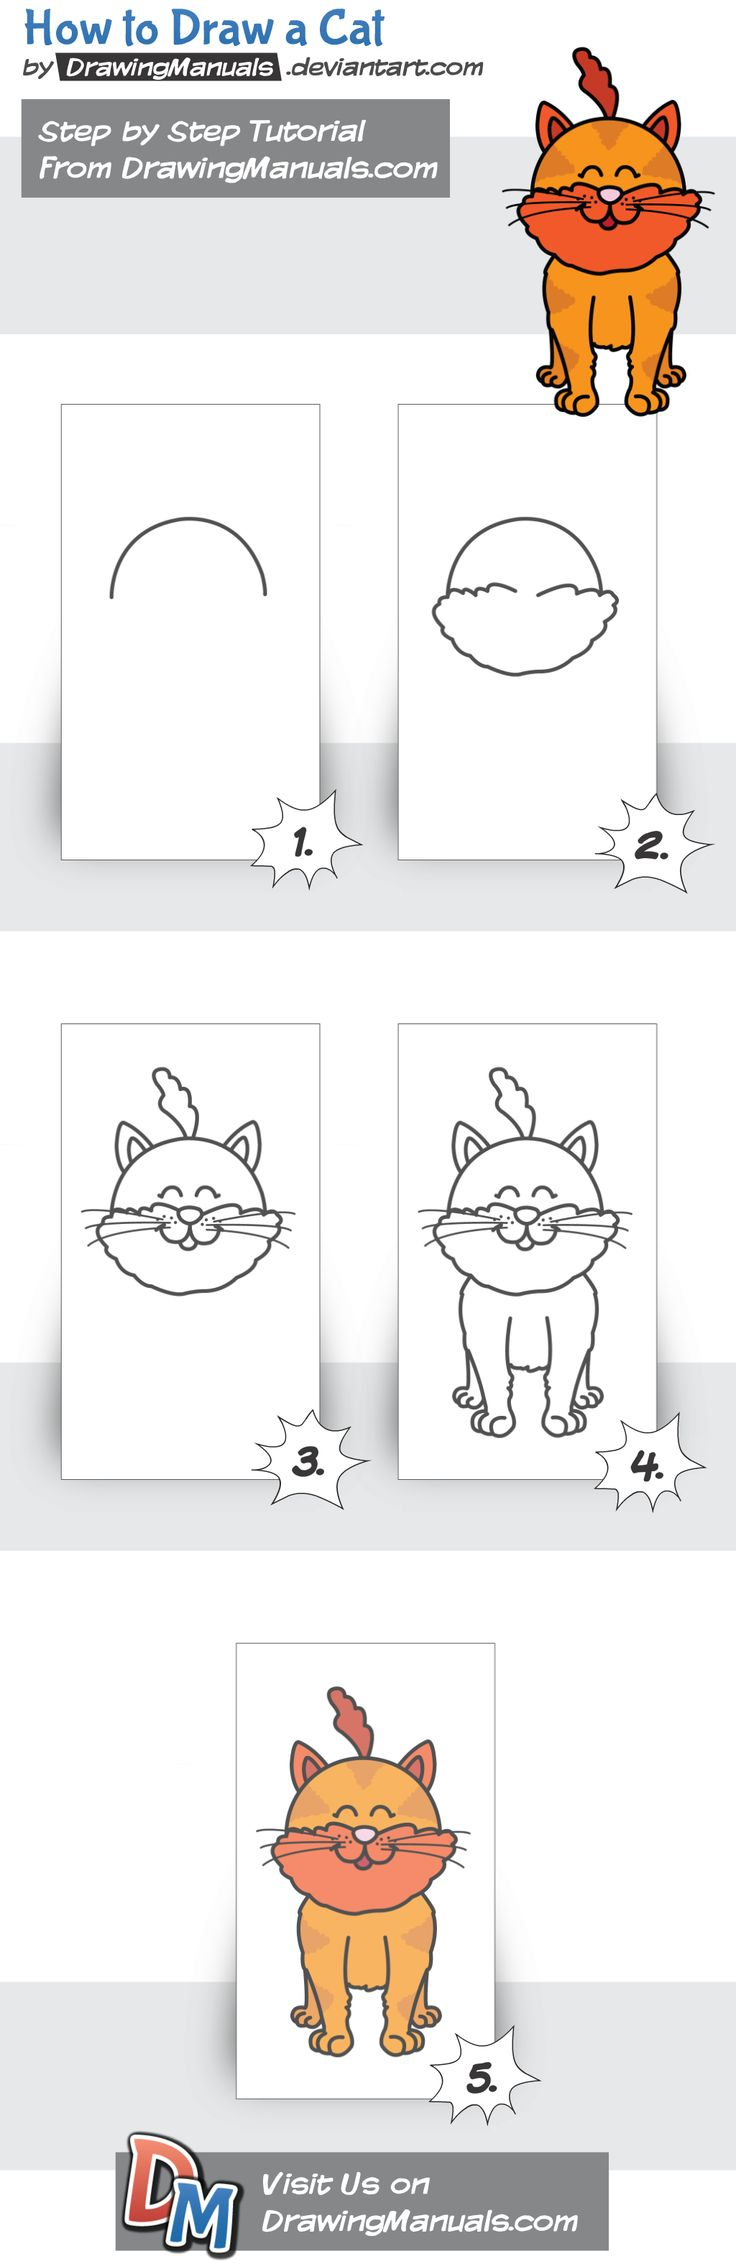 How to Draw a Cat Step-by-Step https://play.google.com/store/apps/details?id=com.aku.drawissimo https://itunes.apple.com/app/id1098056720